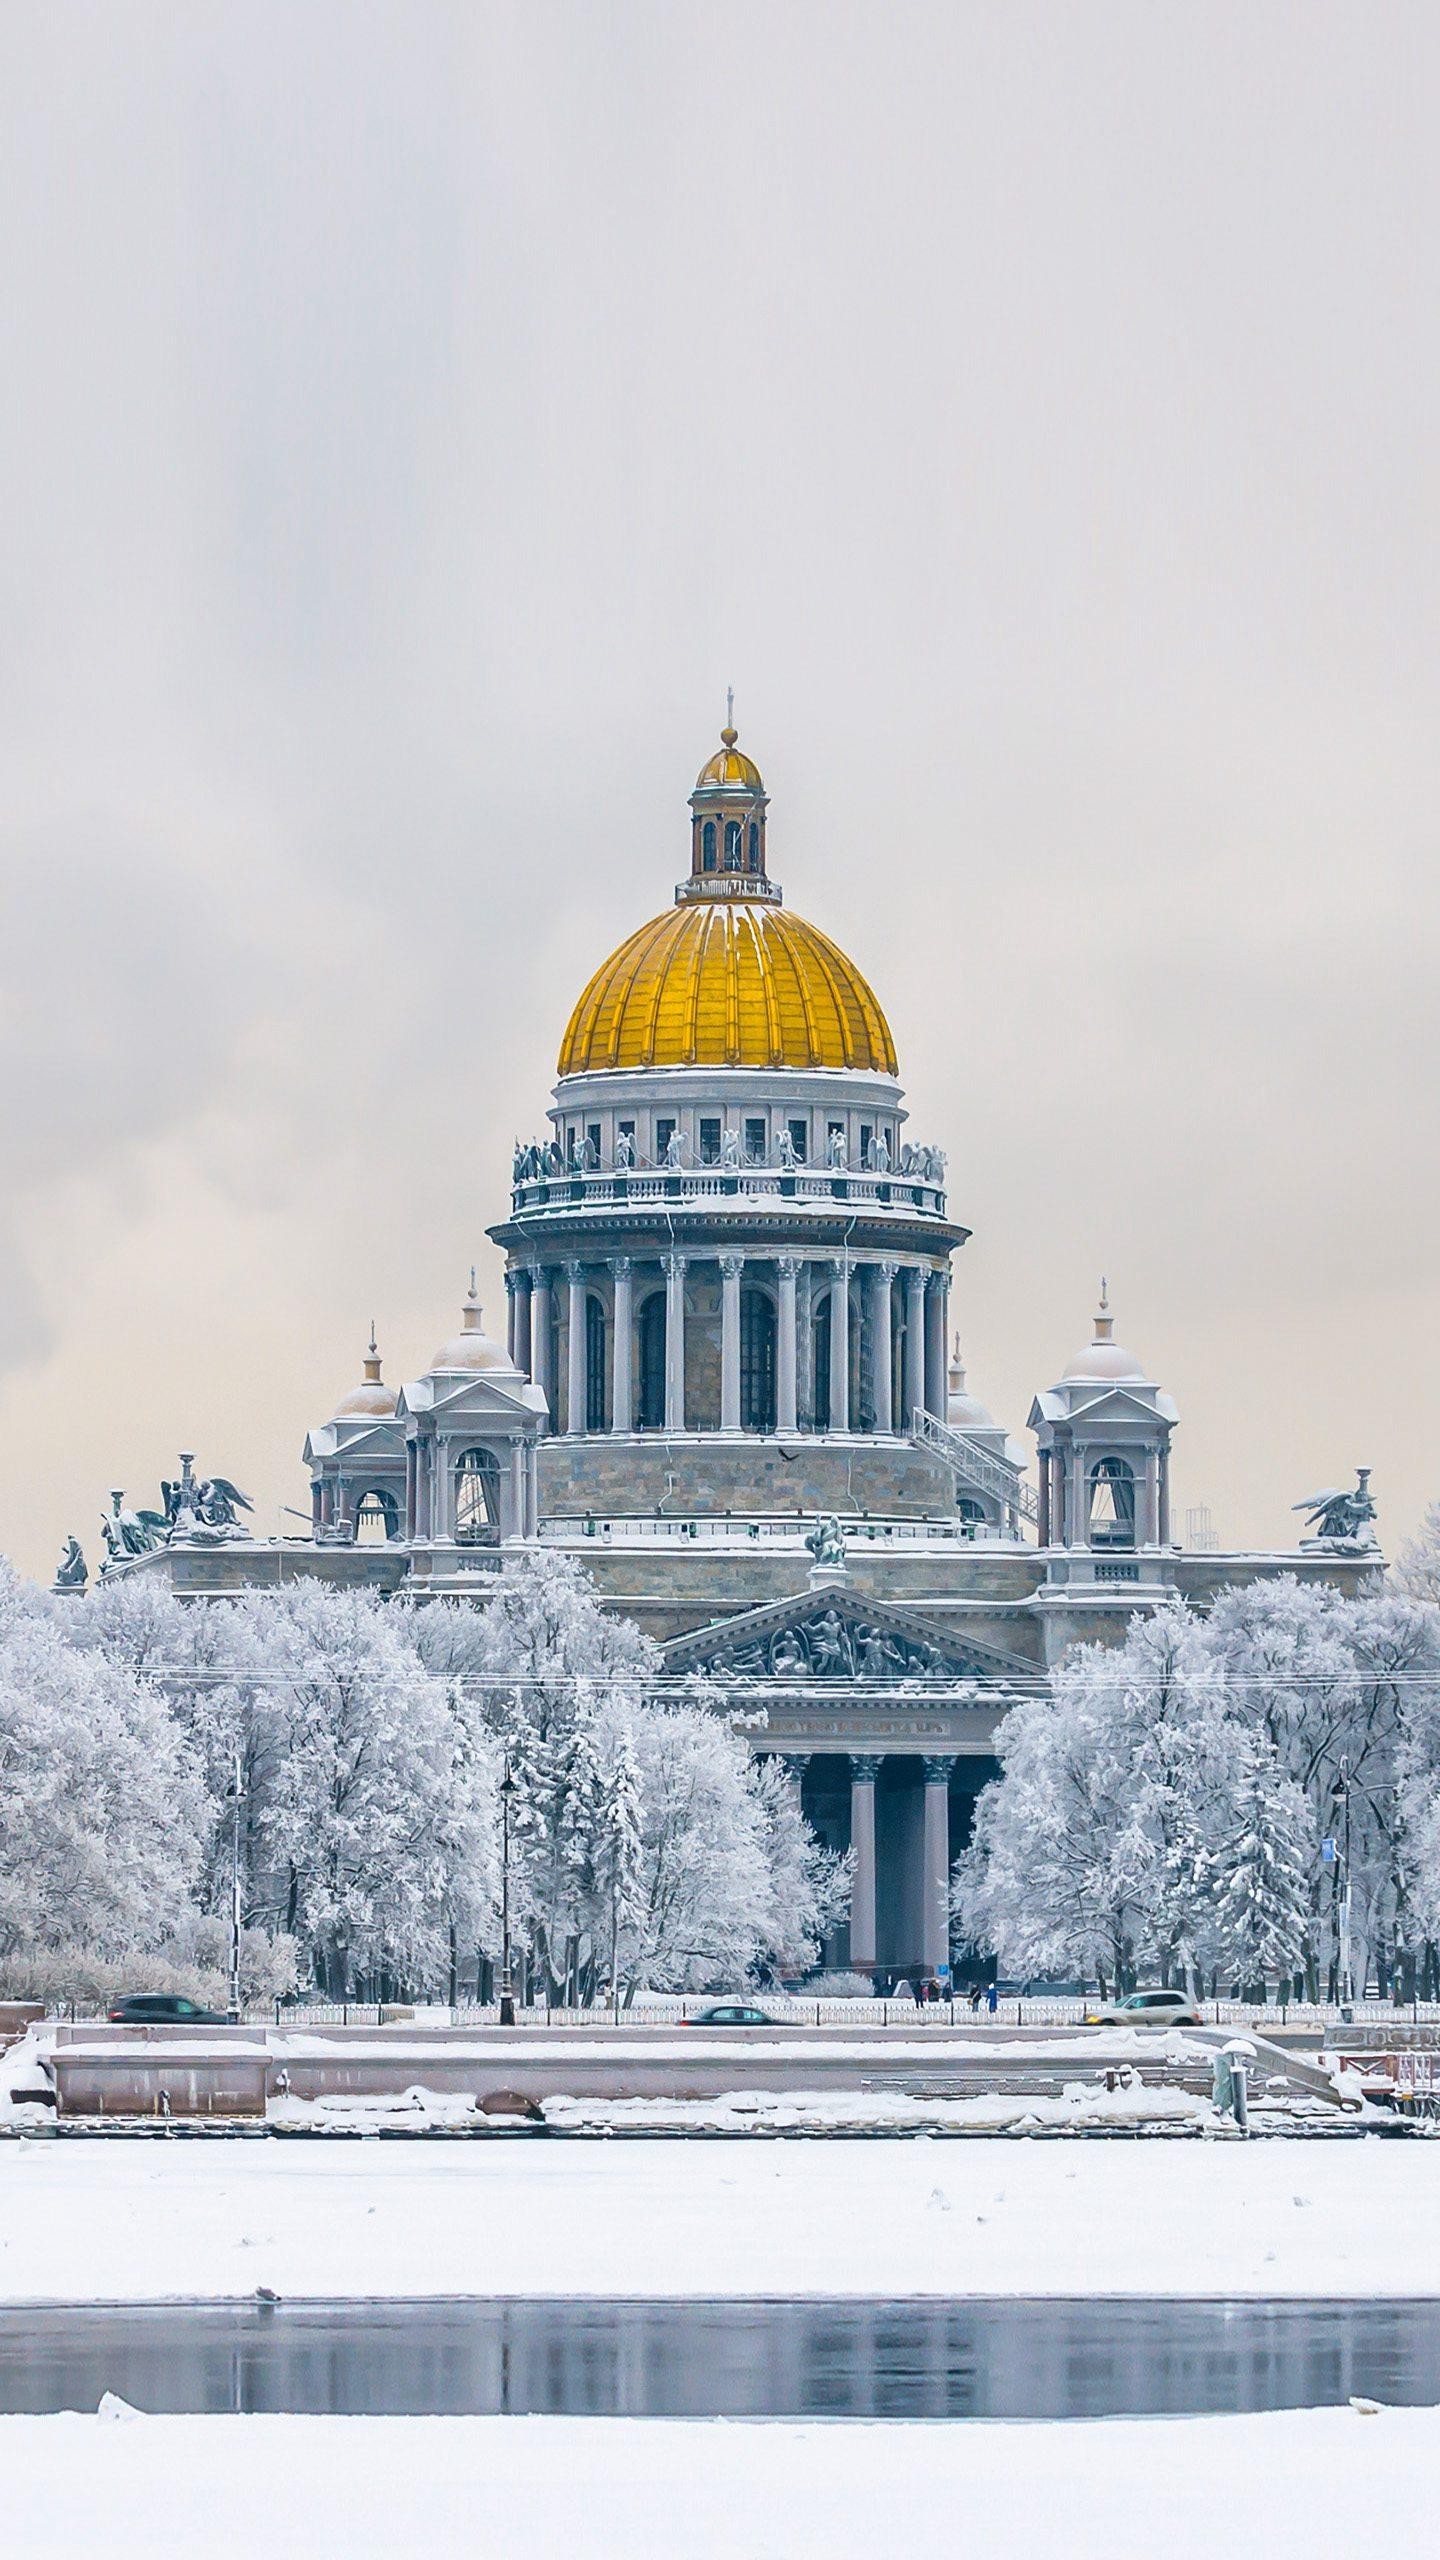 St. Petersburg in the winter. Come to the ultimate winter St. Petersburg tour and experience the human feelings in the snow scene.